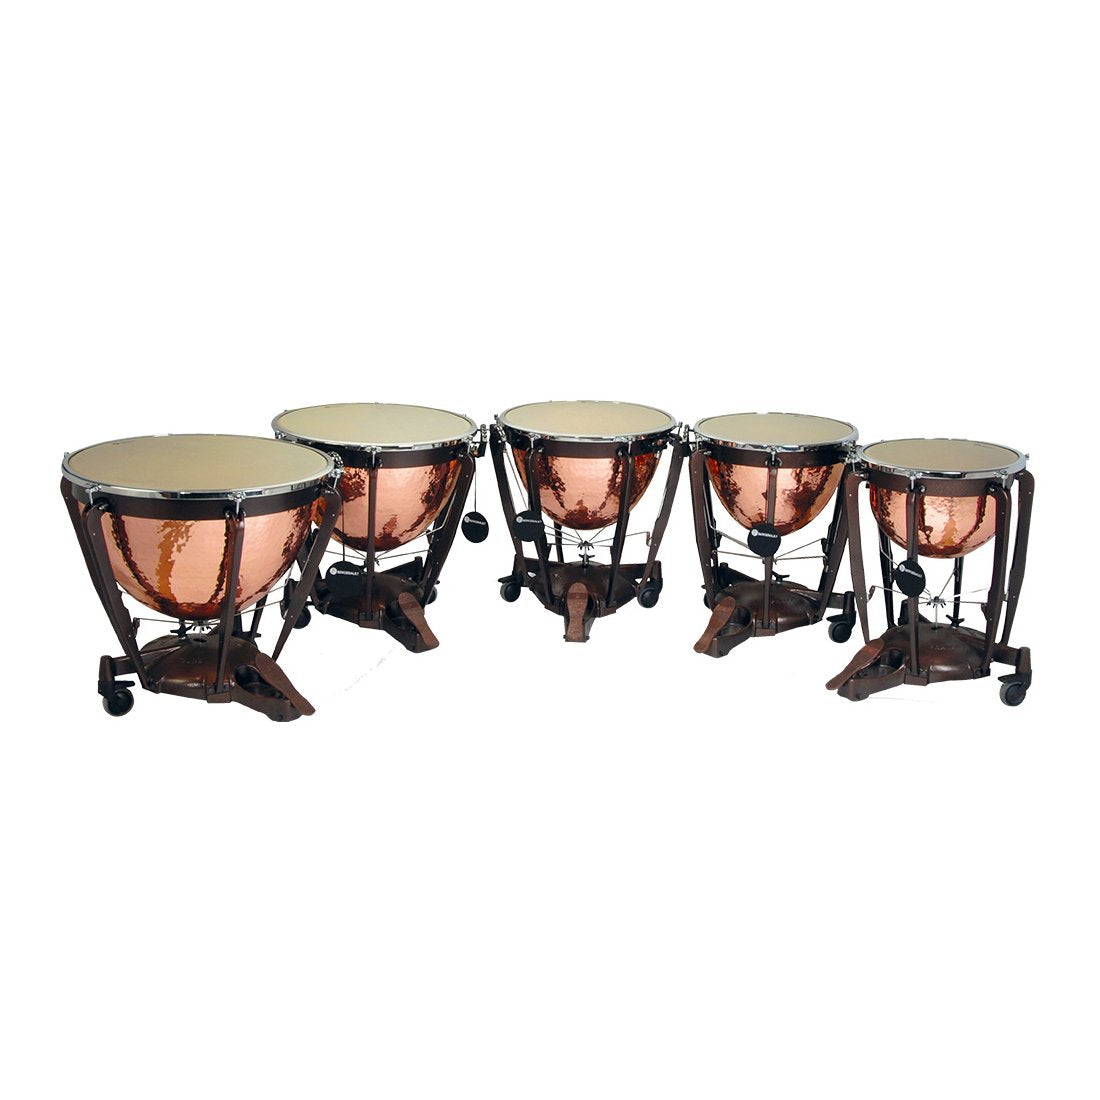 Bergerault - Grand Professional Timpani (Deep Polished Copper Bowl)-Percussion-Bergerault-Music Elements